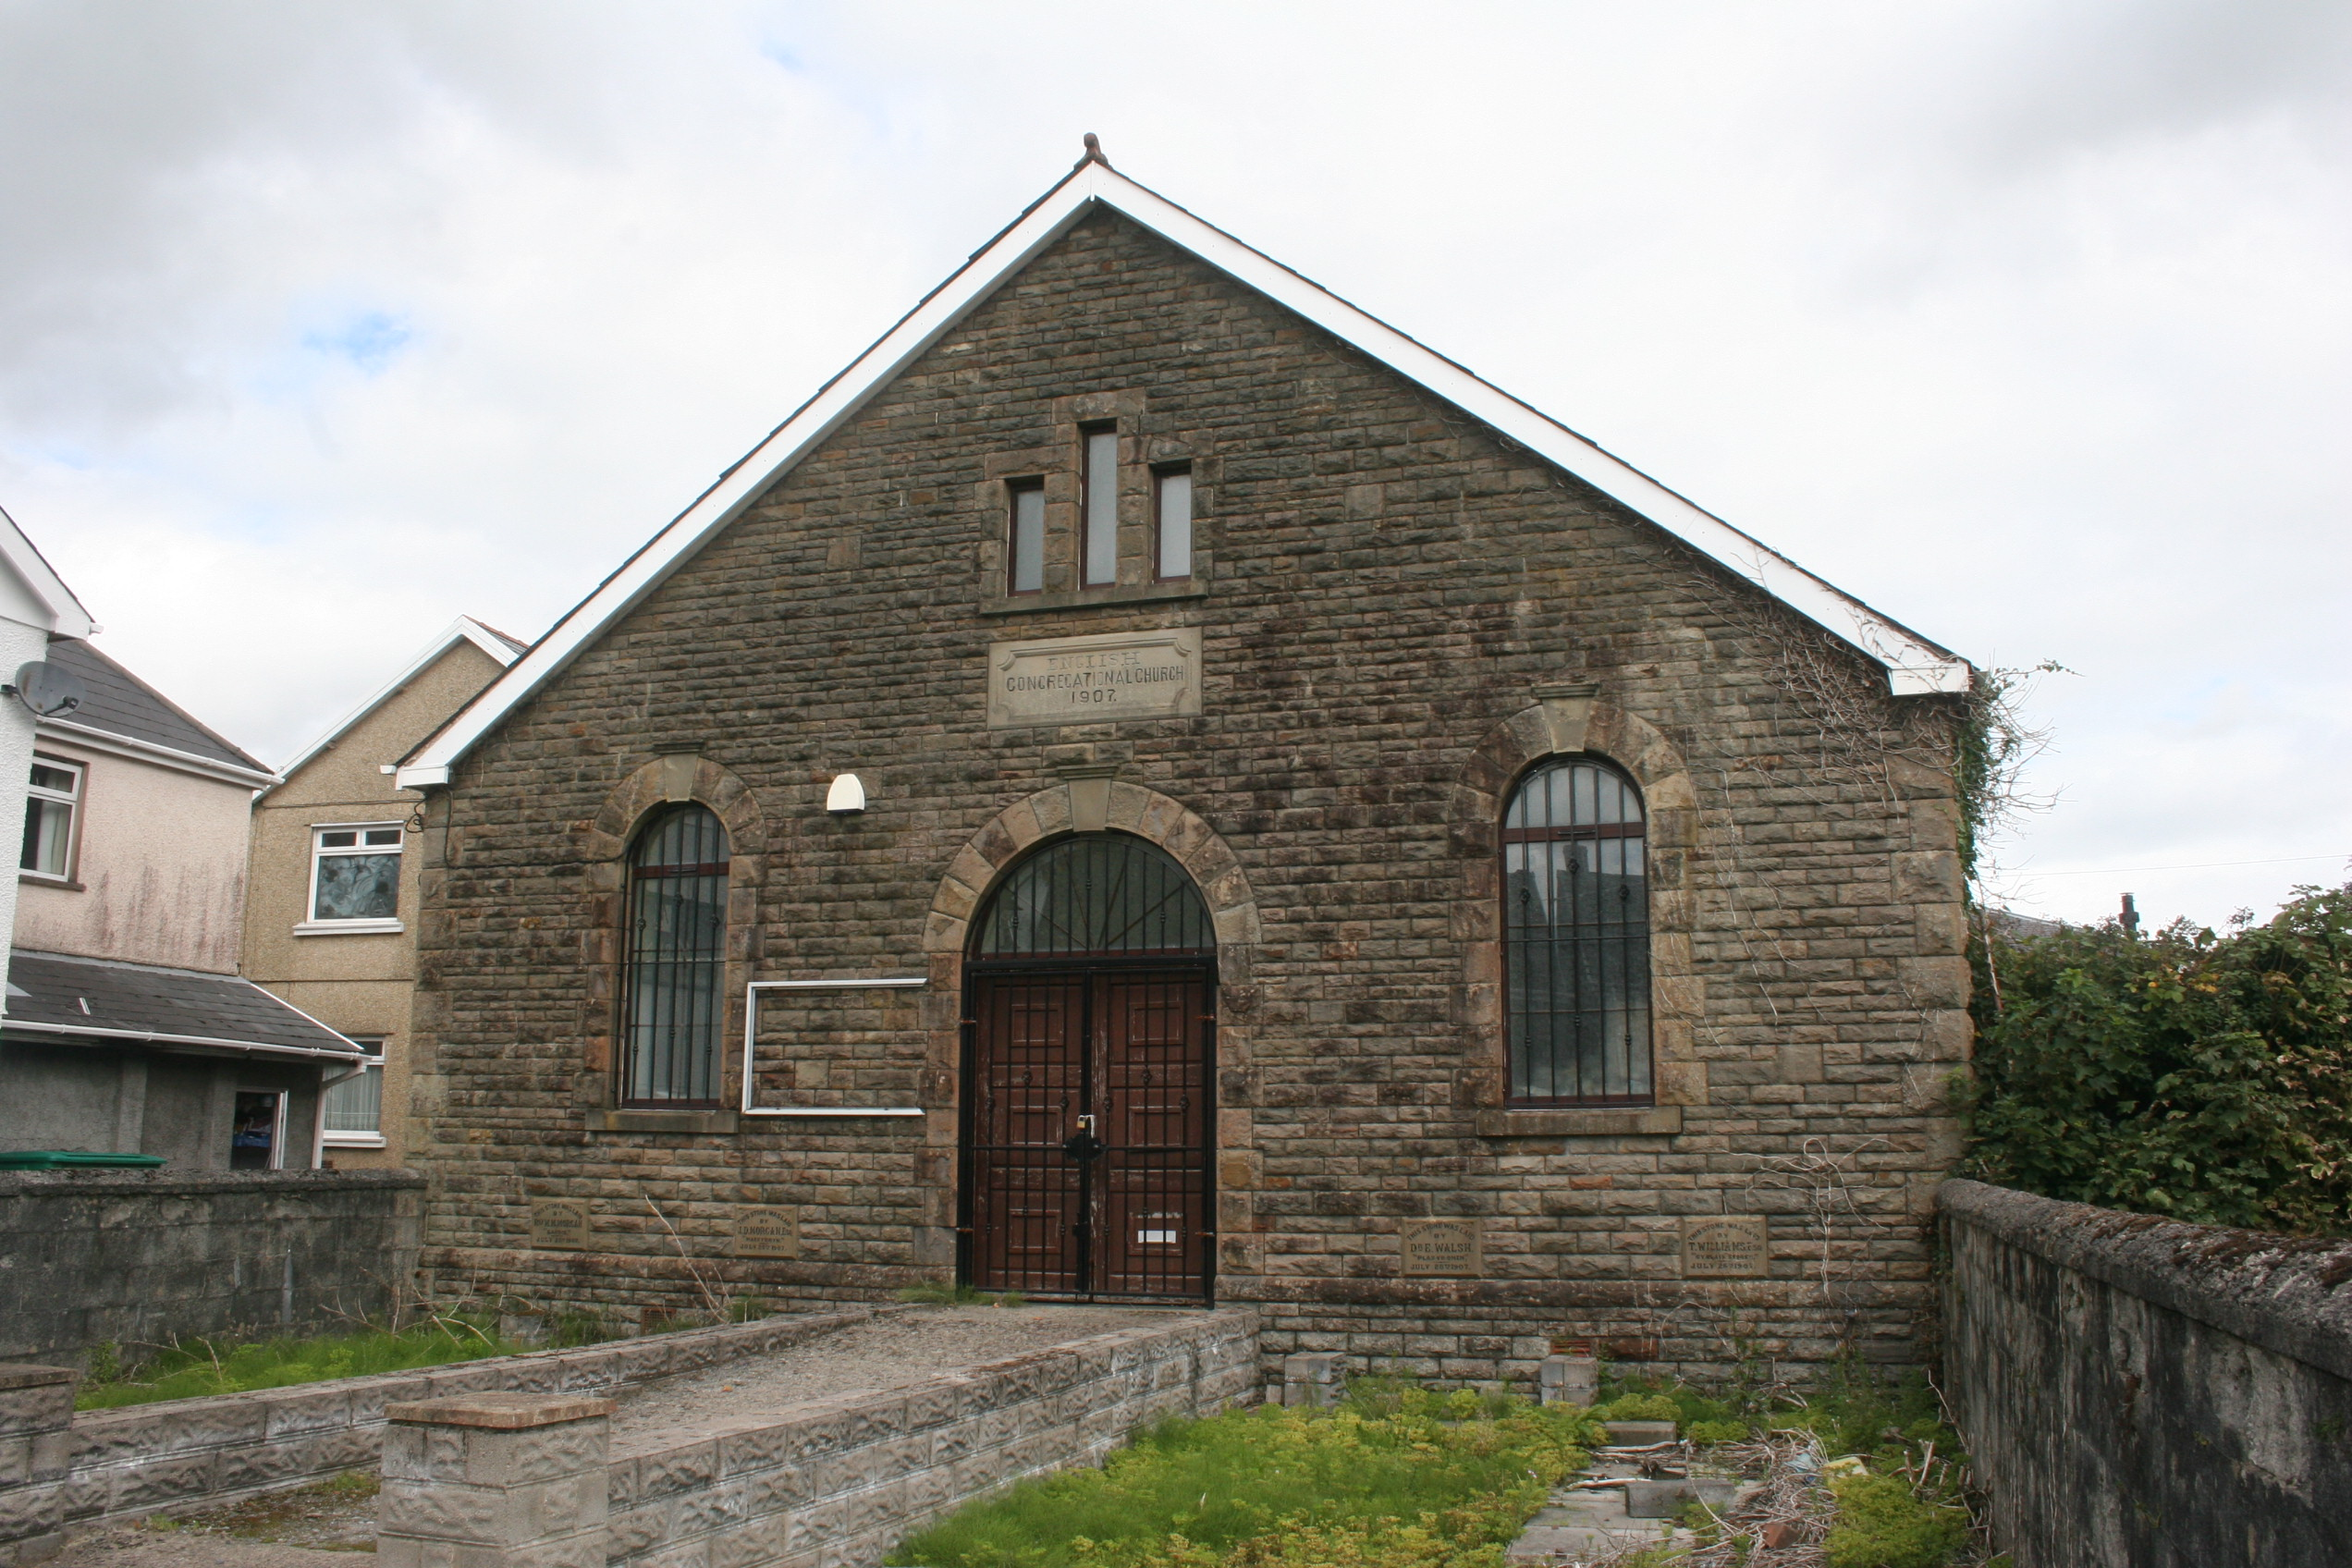 The English Congregational Church, Ystradgynlais